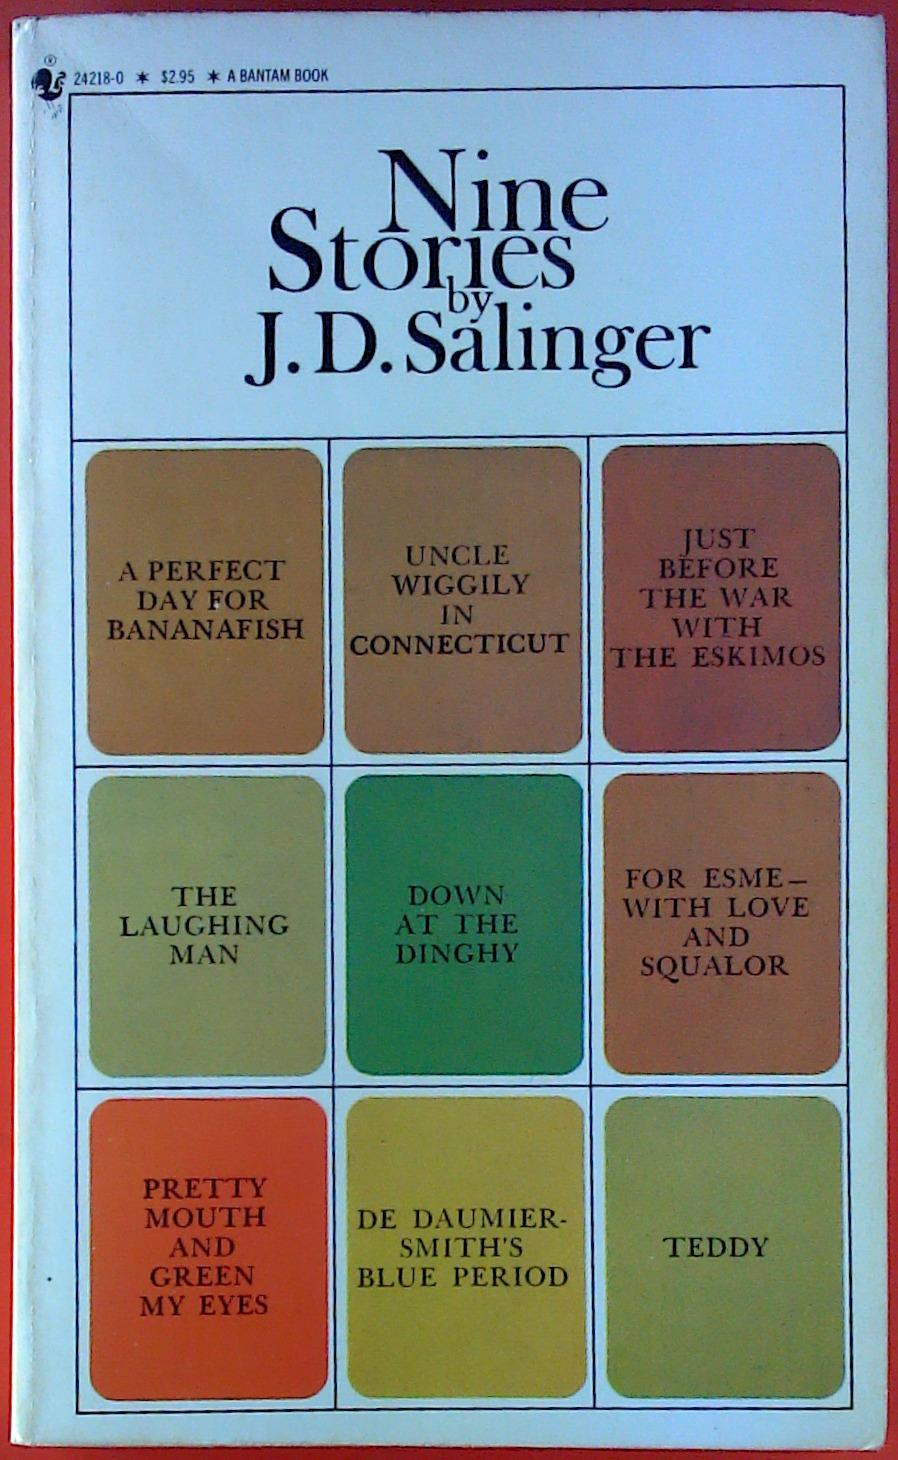 jd salinger a perfect day for bananafish